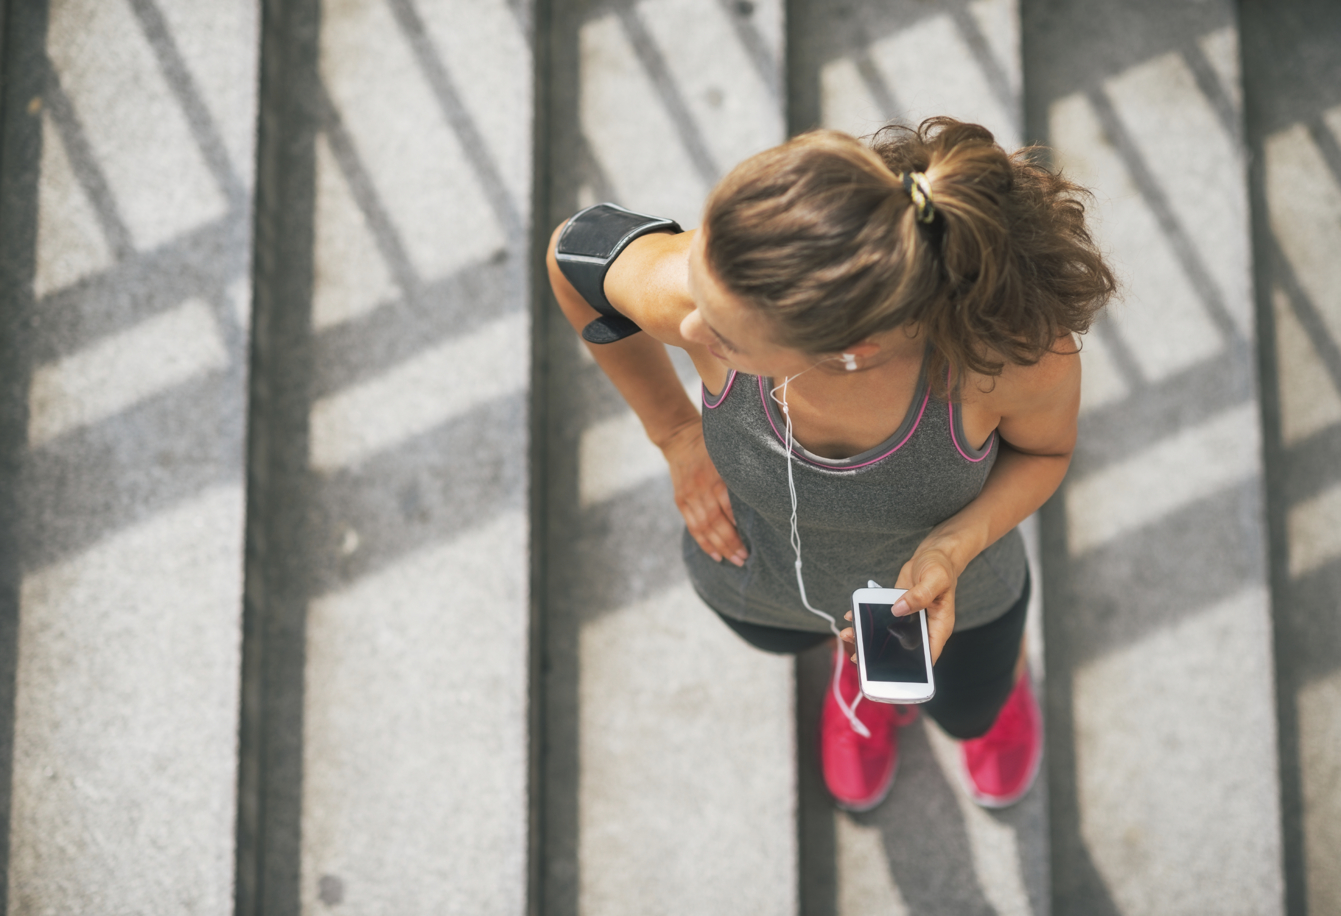 Portrait of fitness young woman with cell phone outdoors in the city